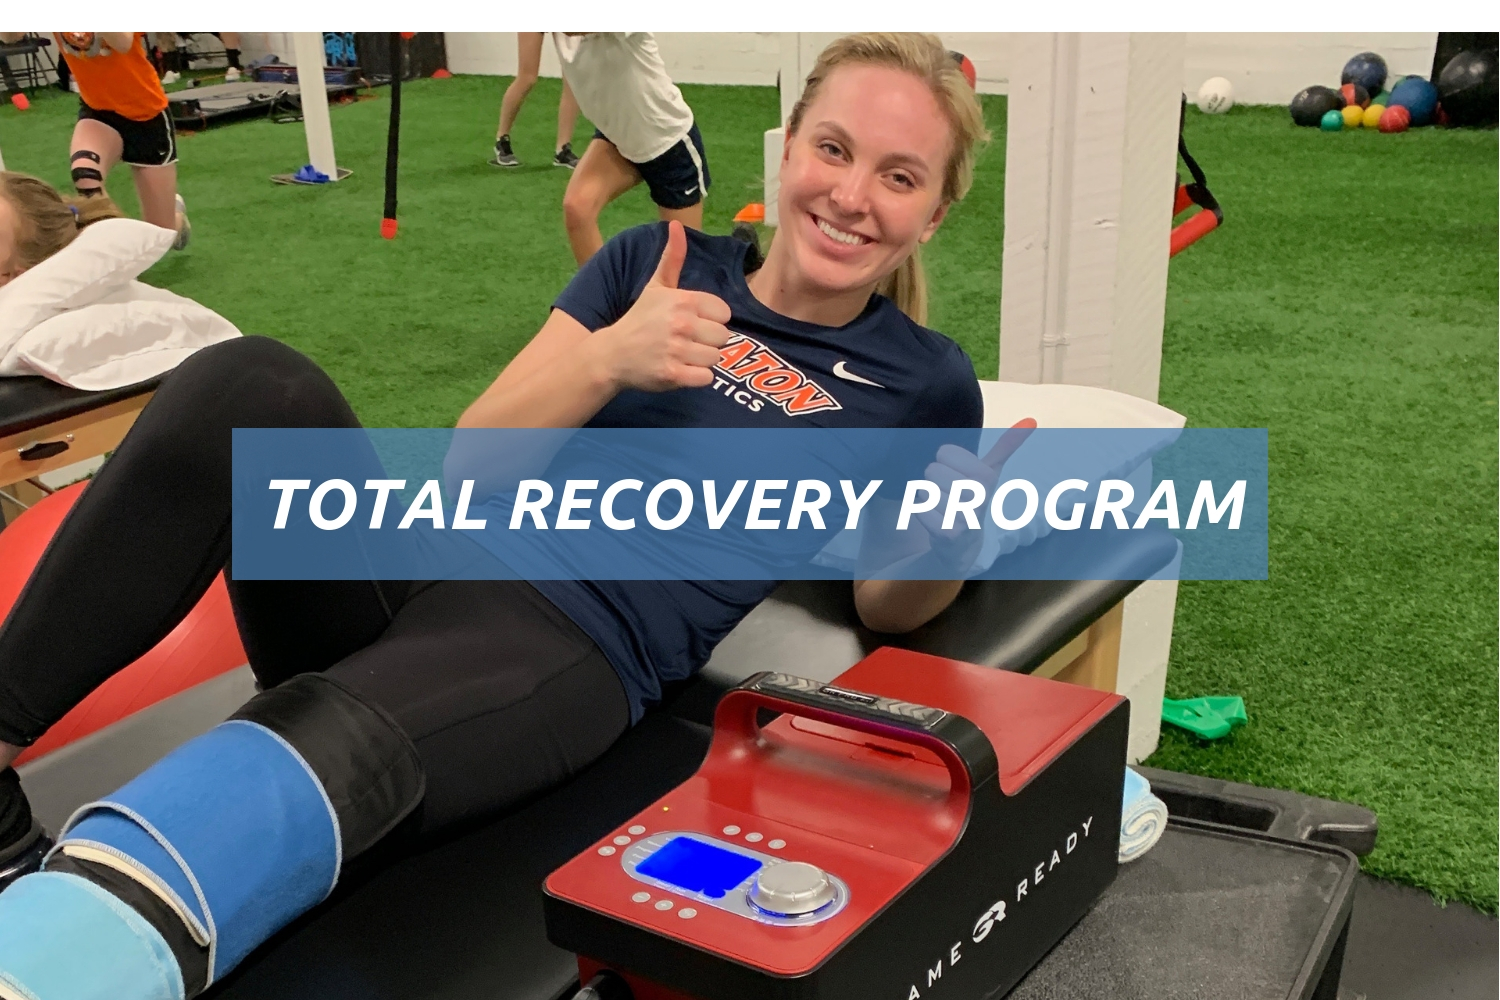 TOTAL RECOVERY PROGRAM - PTAP Website Home- Services graphics.jpg